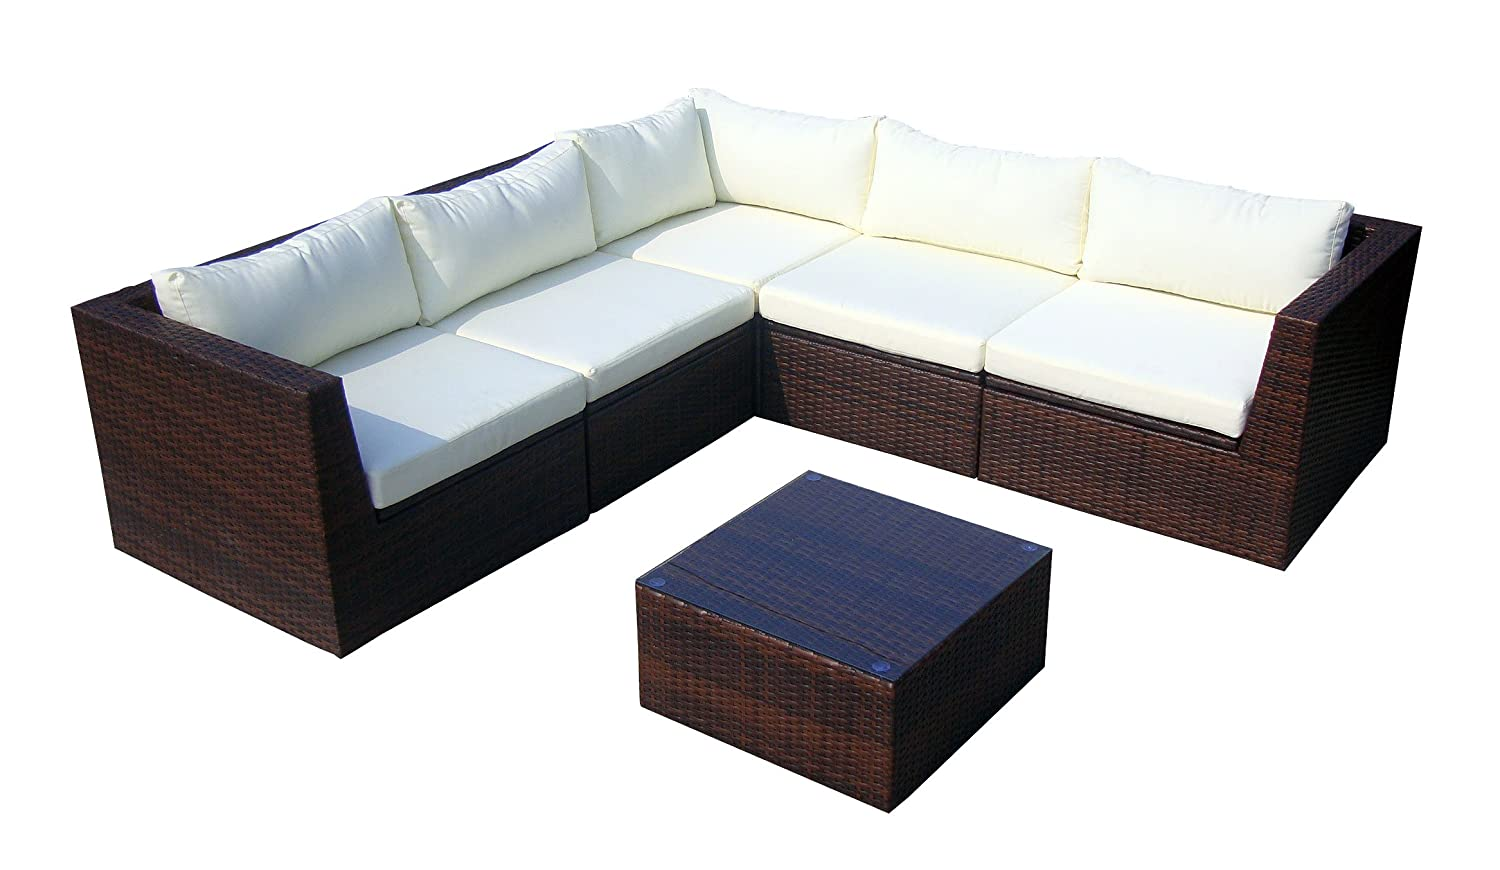 baidani gartenm bel sets designer rattan lounge garnitur surprise sofa. Black Bedroom Furniture Sets. Home Design Ideas